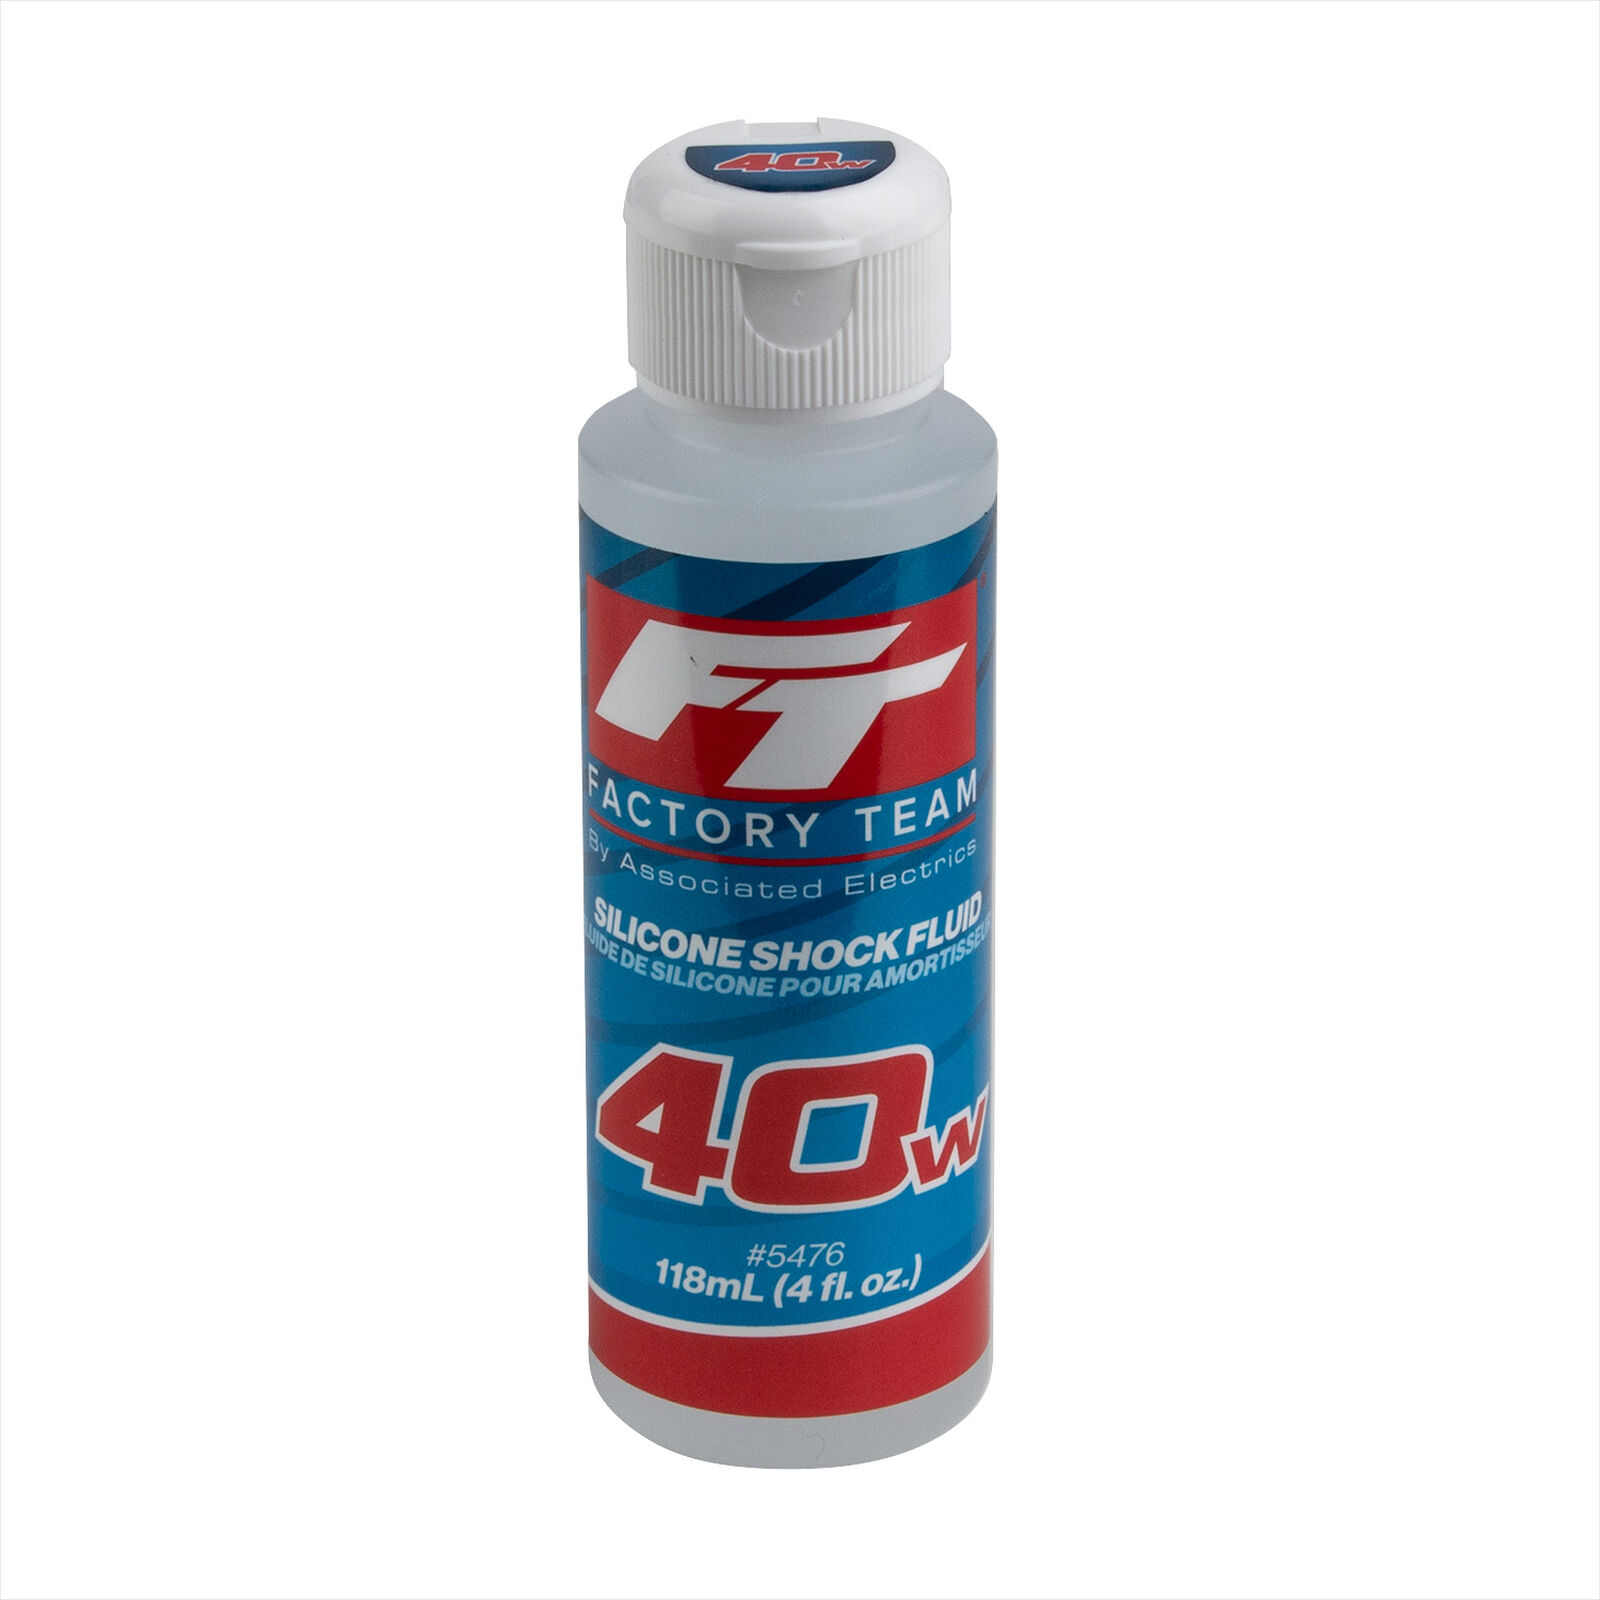 FT Silicone Shock Fluid, 40wt (500 cSt)